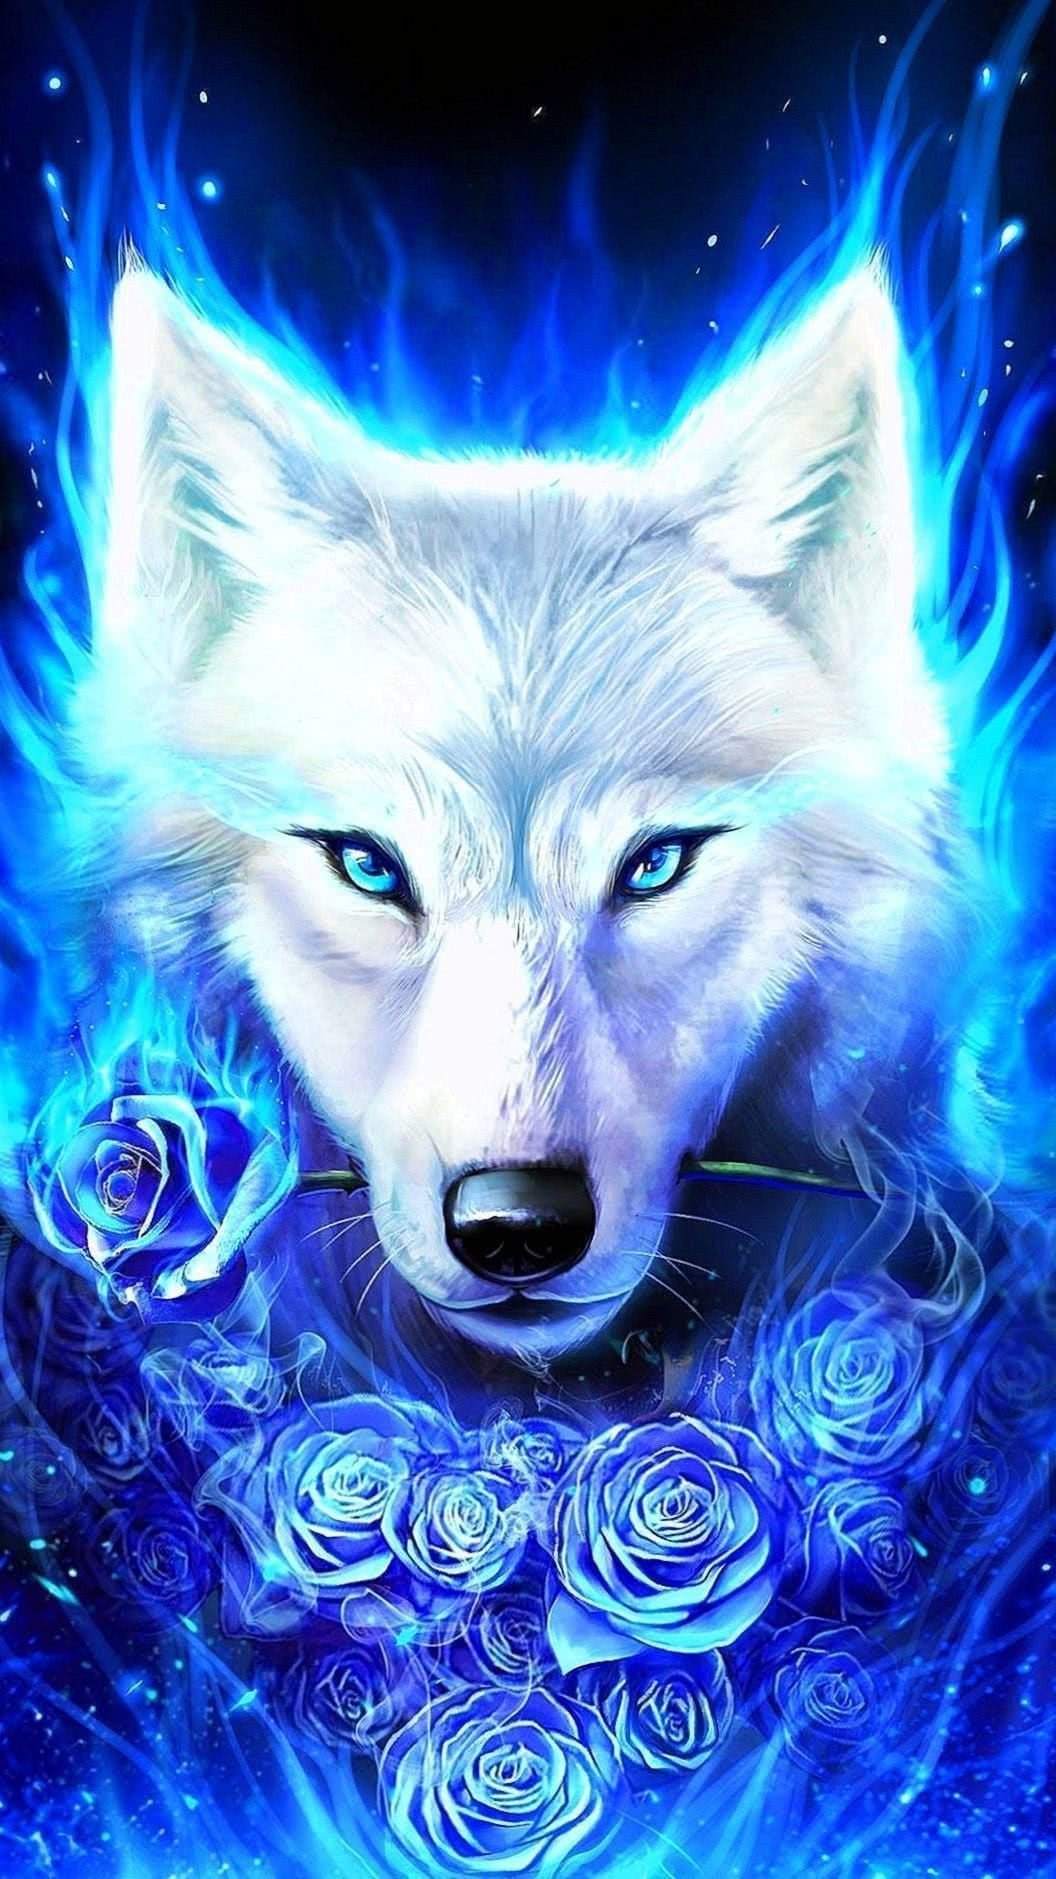 Wallpapers HD Ice Wolf